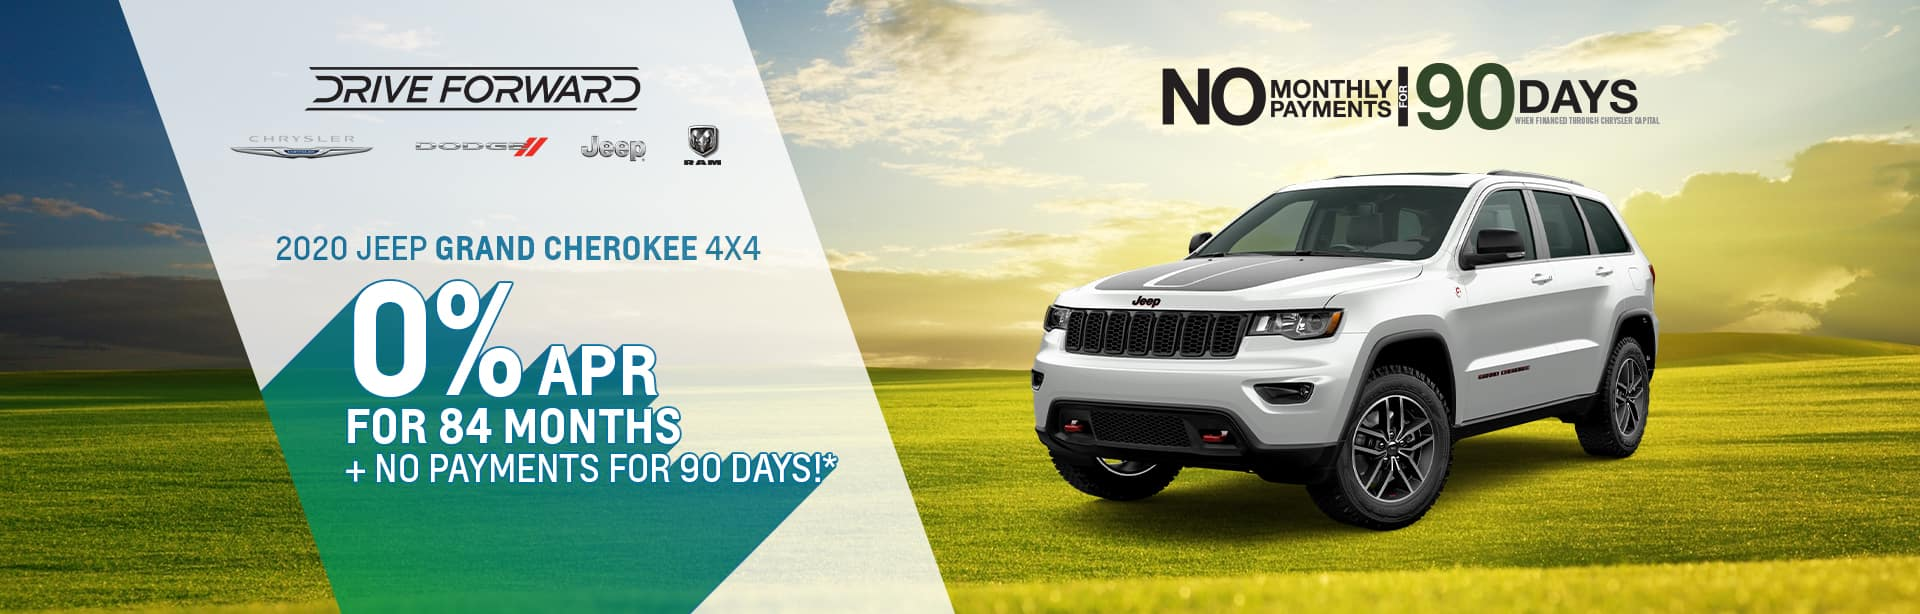 Big Savings on a New Grand Cherokee near Rockville, Indiana